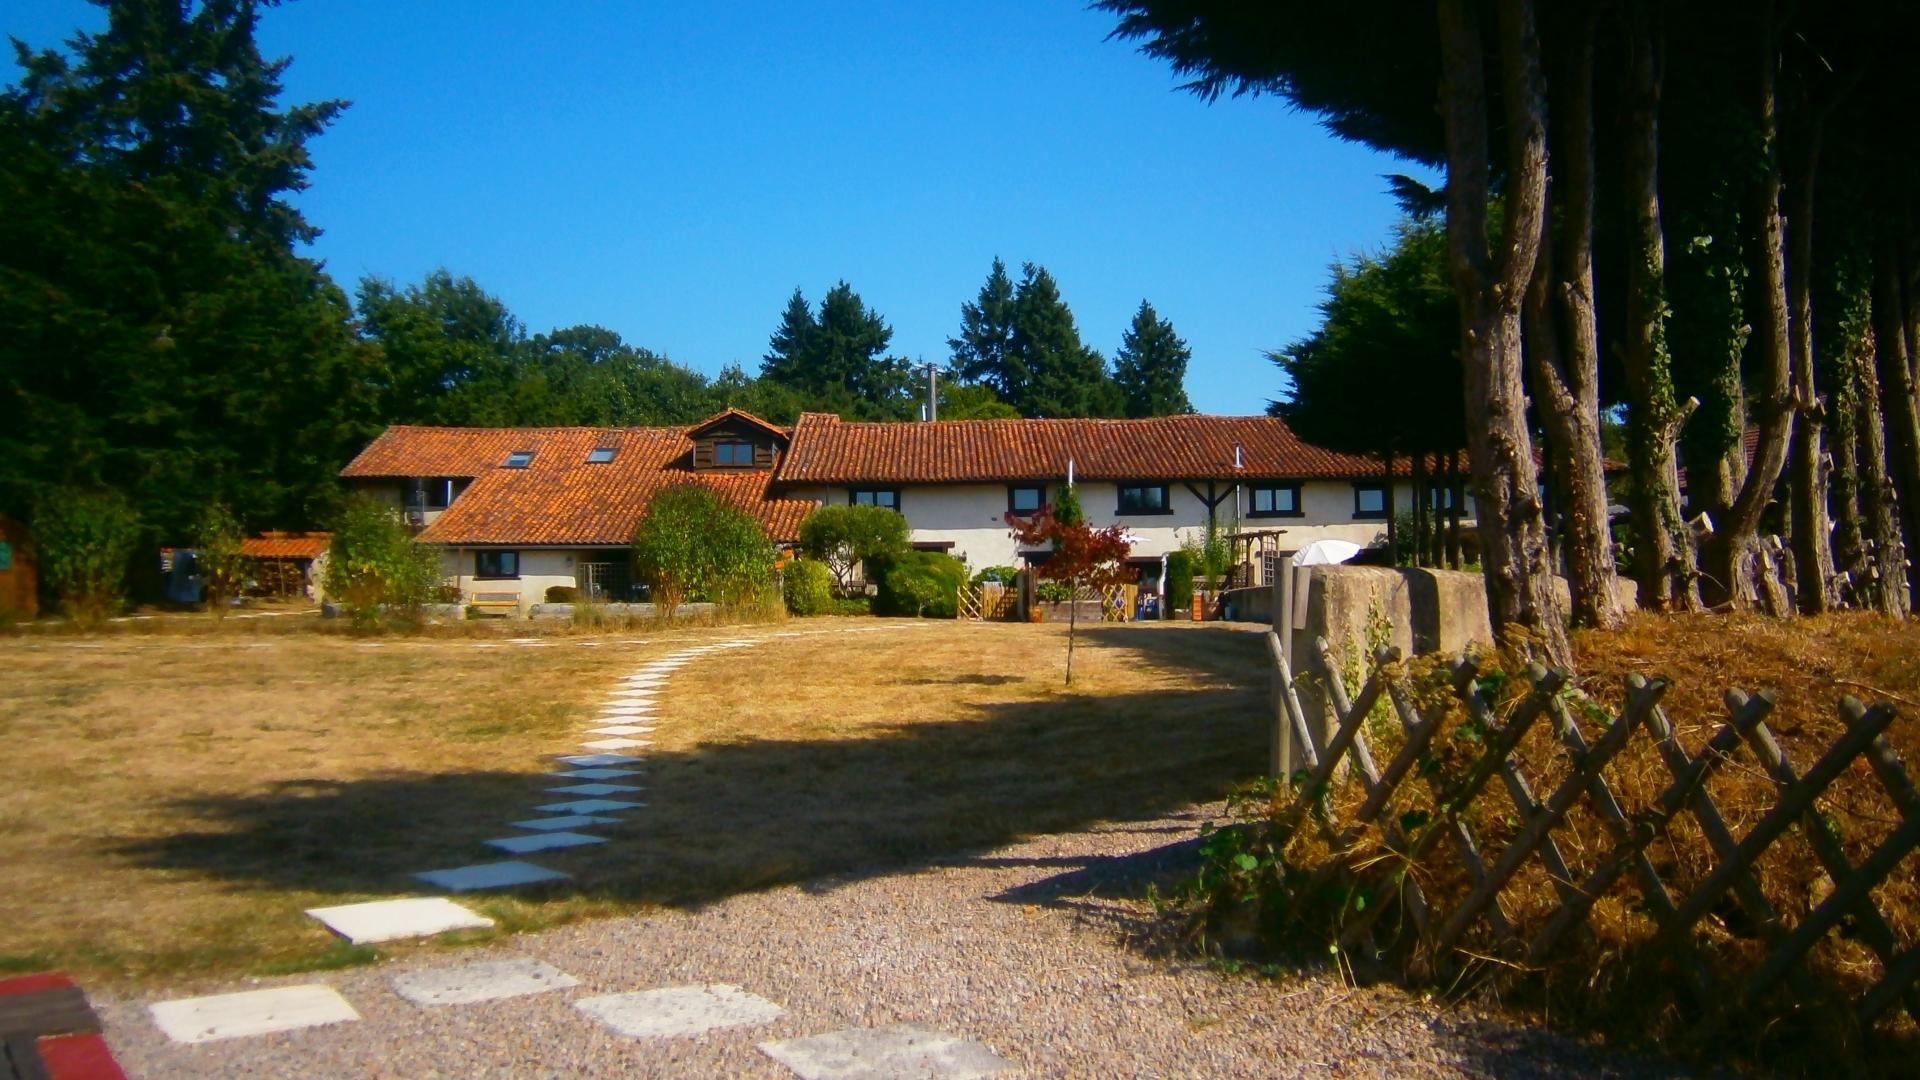 3 Bedroom Cottage/shared facilities in Poitou-Charentes, France